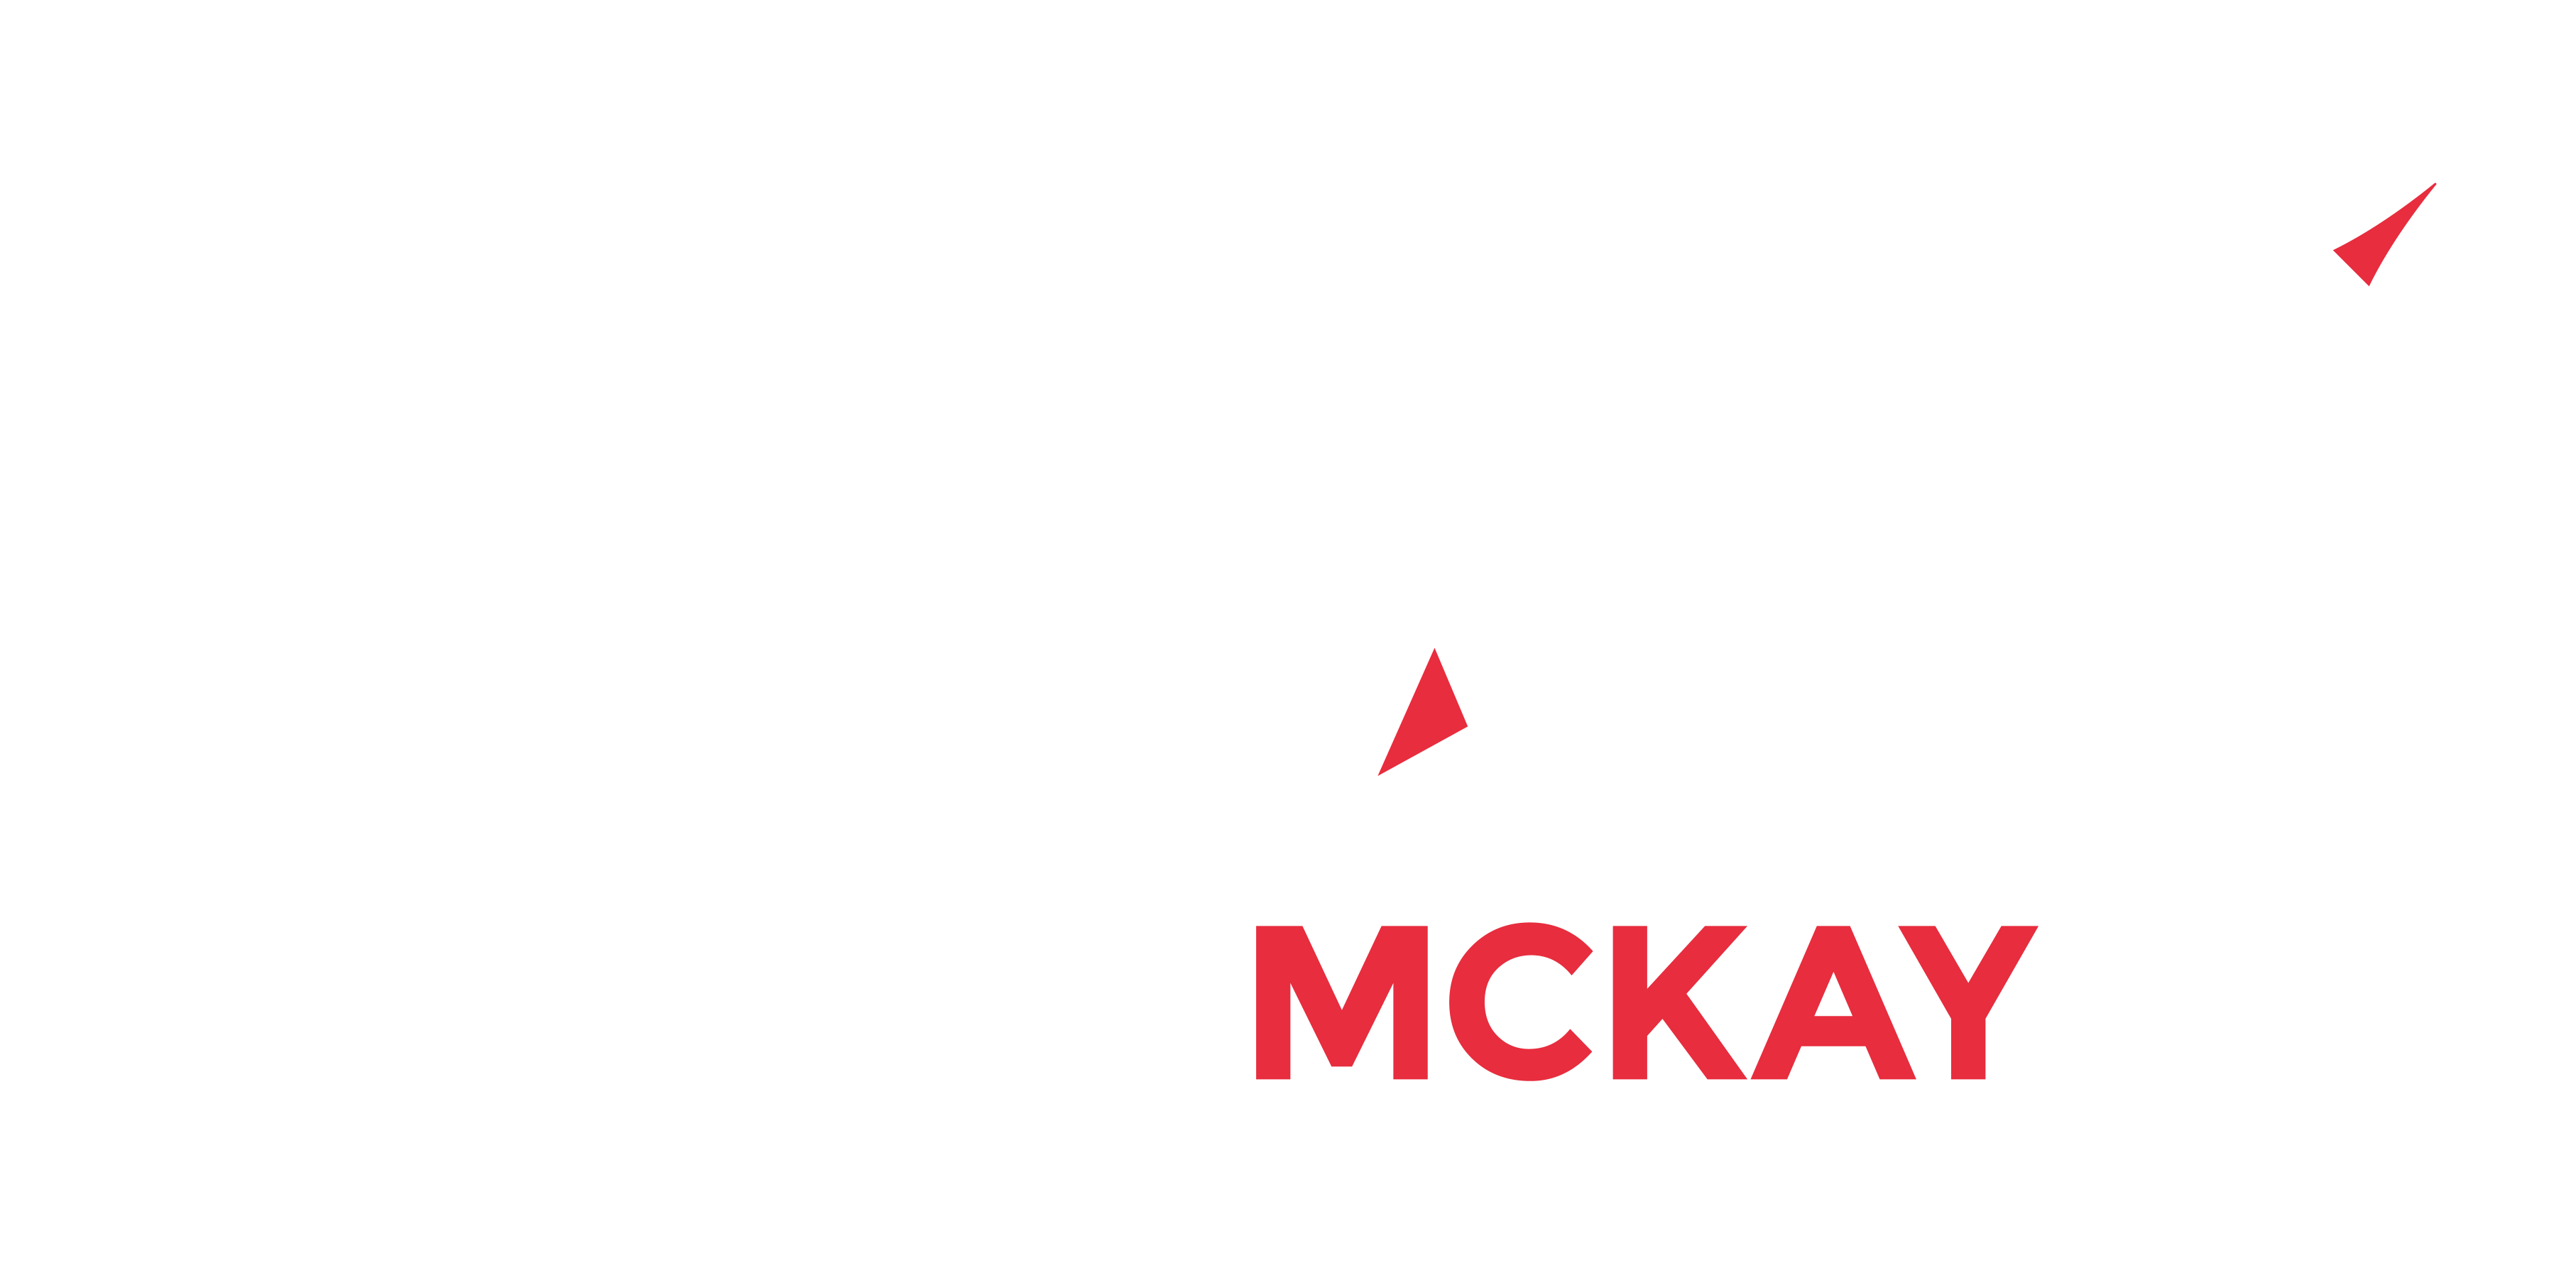 Inchcape-McKay Ltd